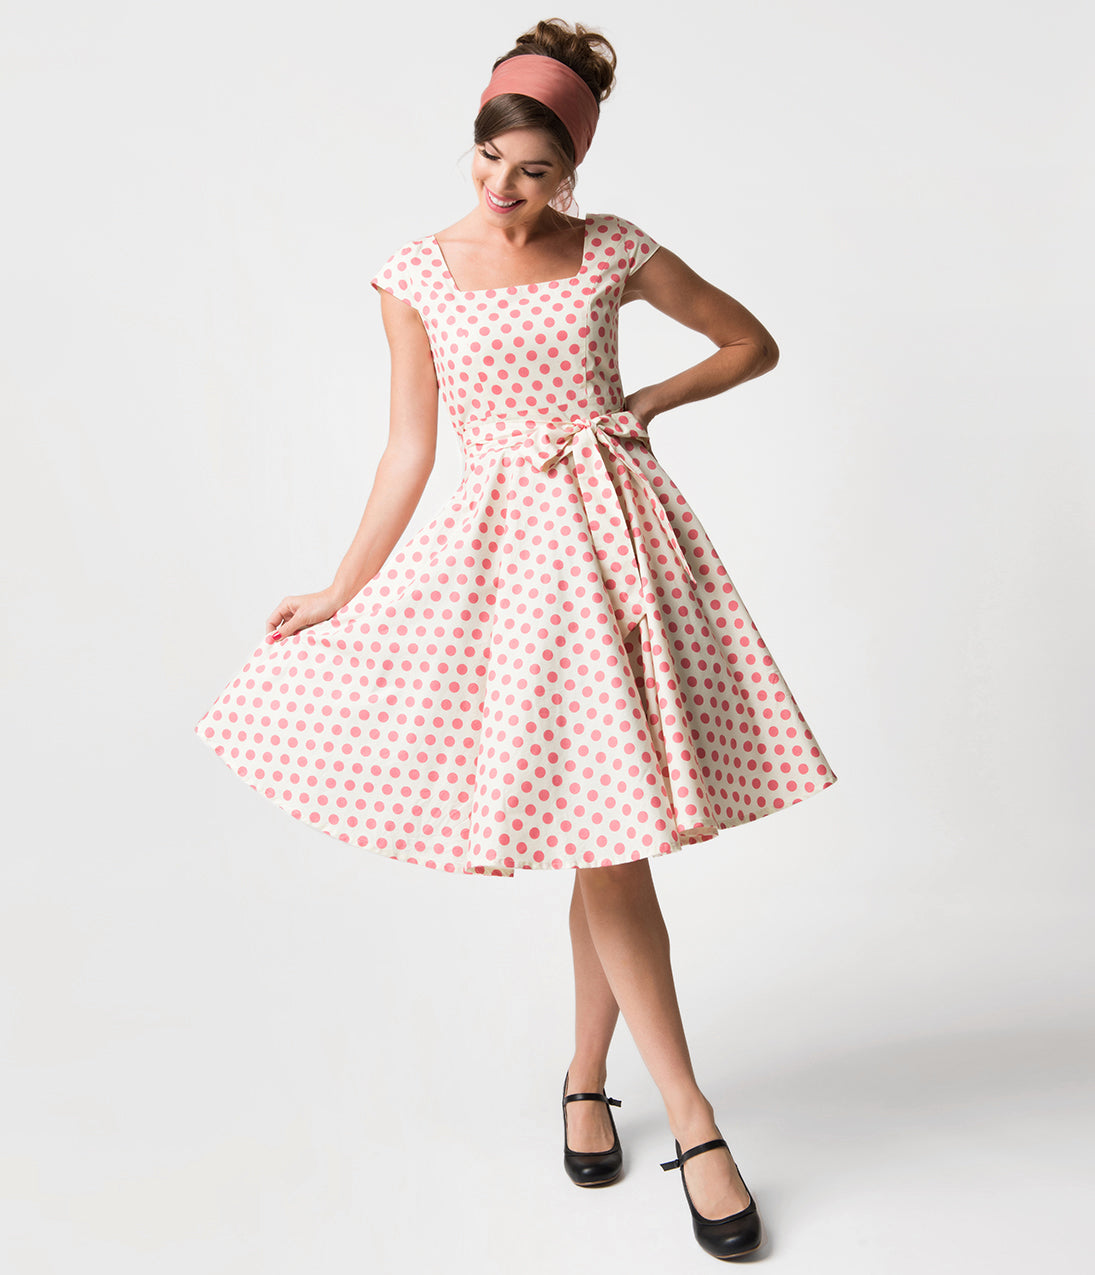 Polka Dot Dresses: 20s, 30s, 40s, 50s, 60s Ivory  Pink Polka Dot Print Anna Cap Sleeve Swing Dress $68.00 AT vintagedancer.com